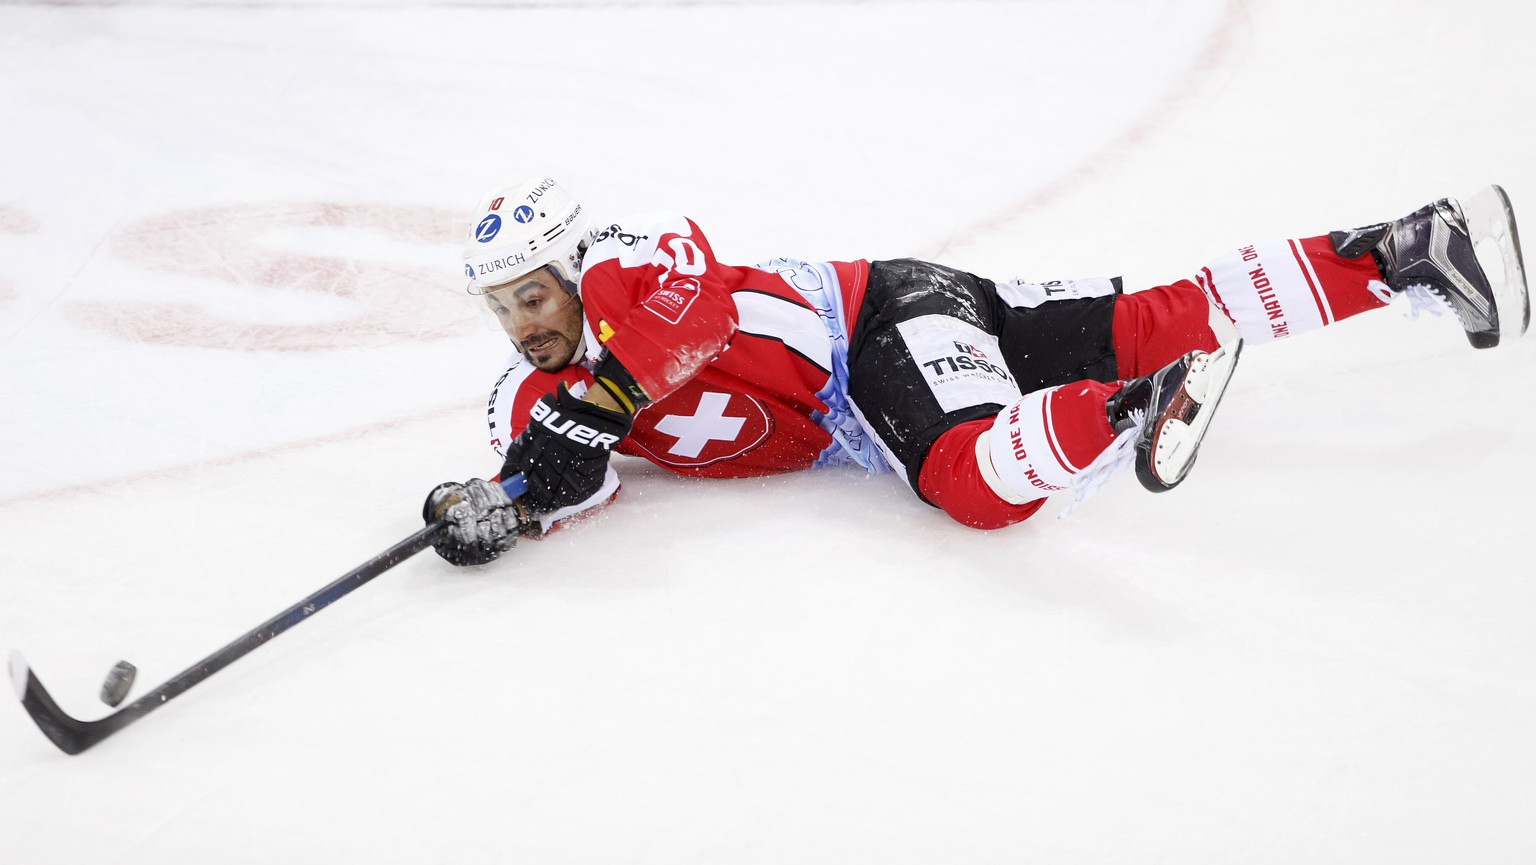 Switzerland's Andres Ambuehl tries to catch the puck, during friendly ice hockey game between Switzerland and Latvia, at the ice stadium Les Vernets, in Geneva, Switzerland, Friday, April 29, 2016. (KEYSTONE/Salvatore Di Nolfi)